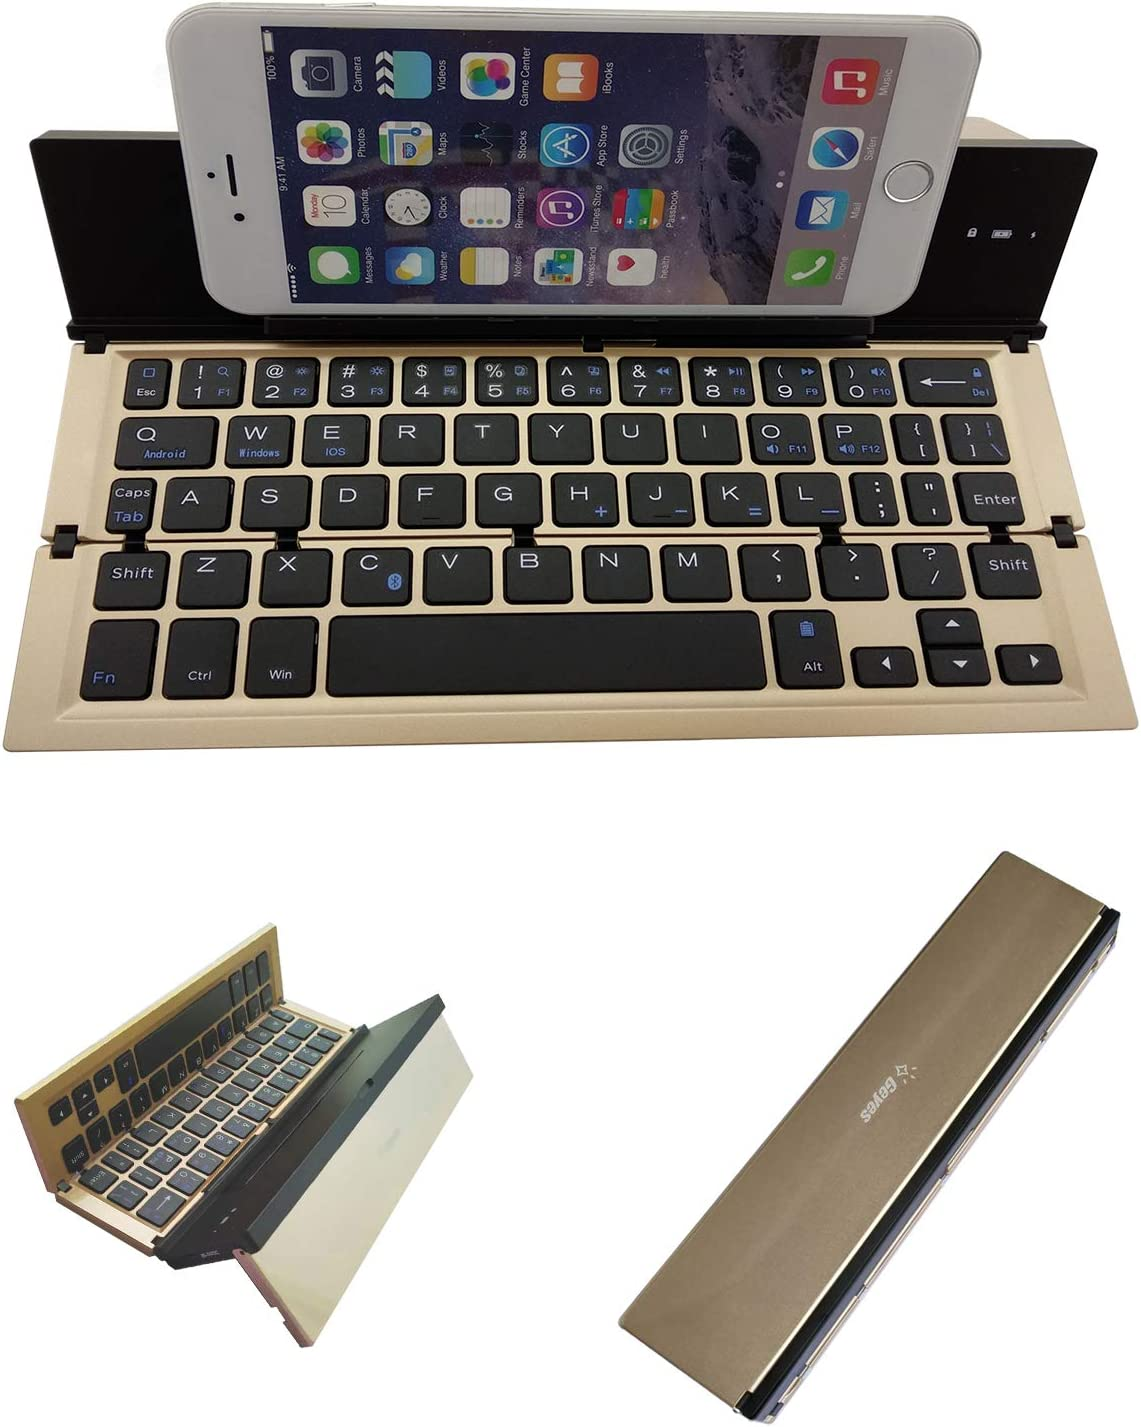 Foldable Bluetooth Keyboard with Portable Pocket Size Aluminum Alloy Housing Universal Foldable Wireless Bluetooth Keyboard for Tablet Phone for All iOS Android Windows Smartphone and More